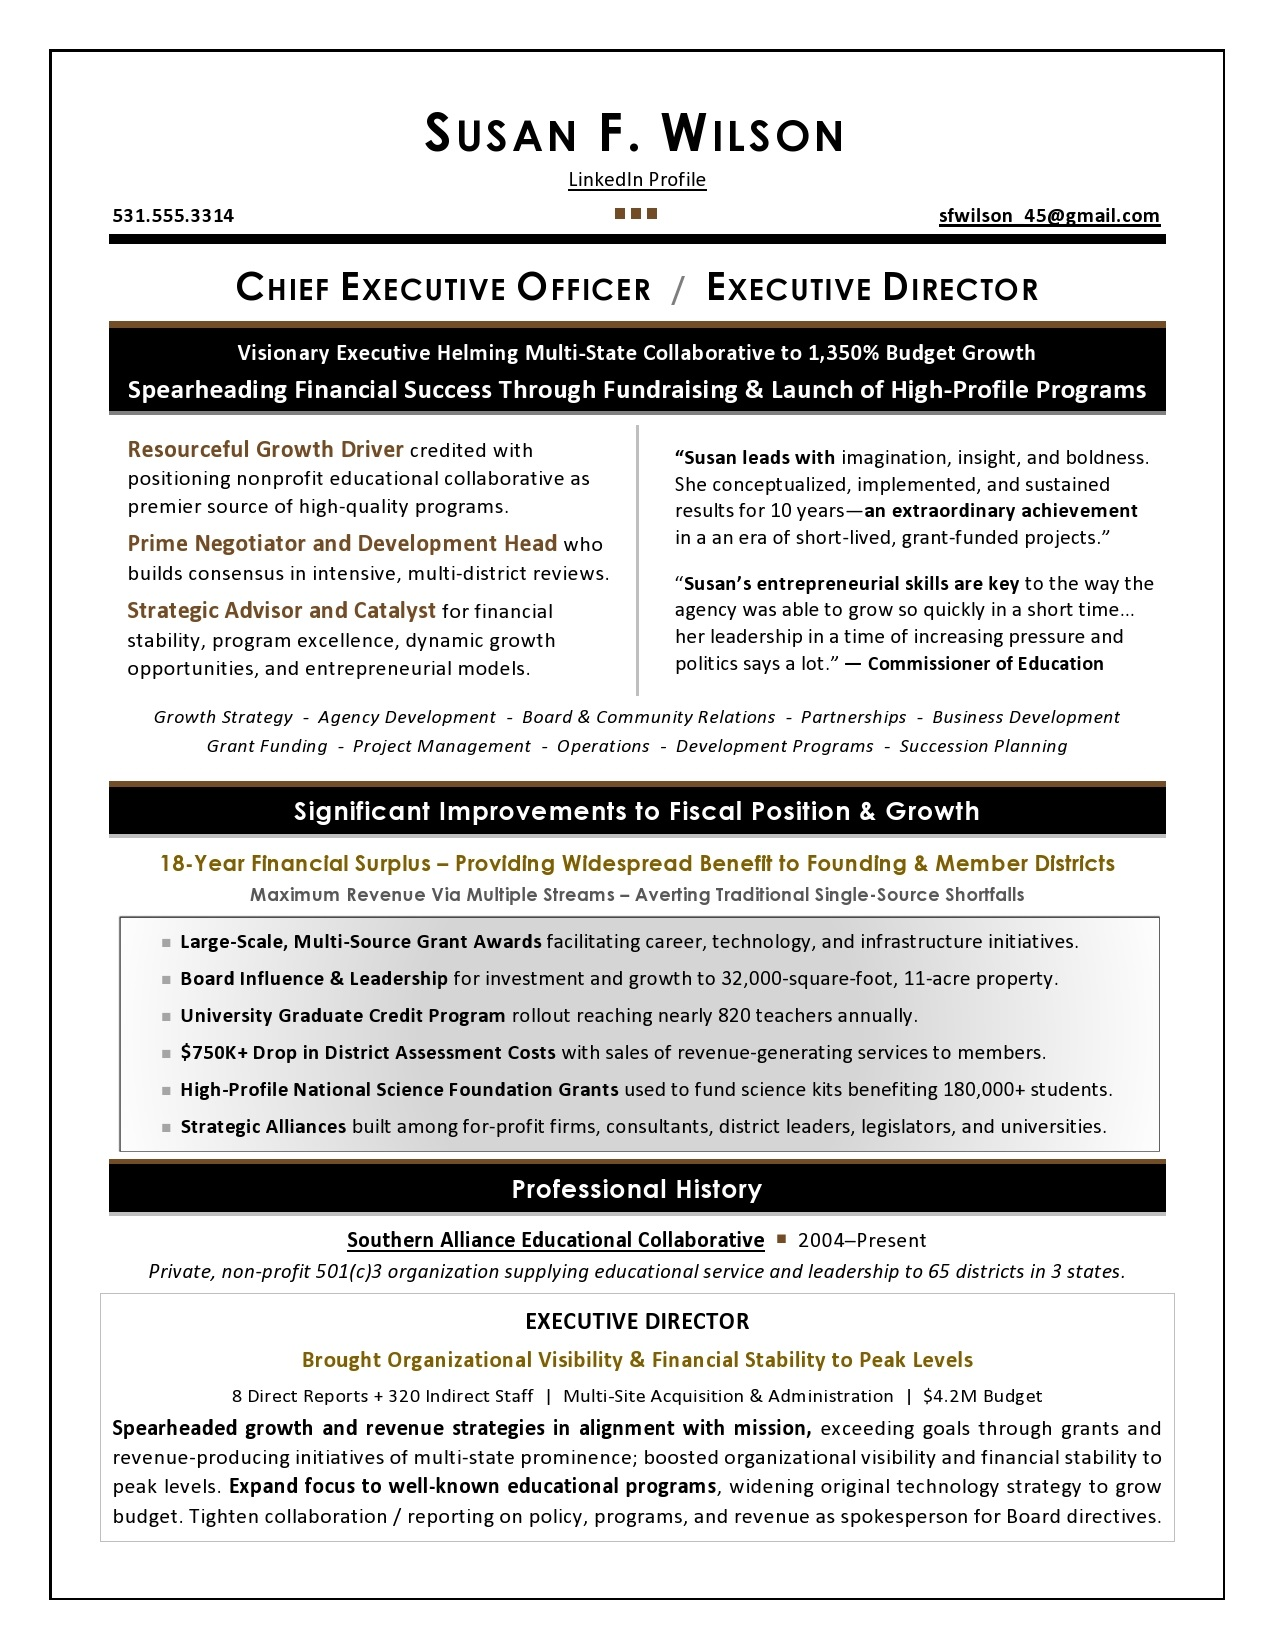 Professional Or Executive Resume Whats The Difference >> Executive Resume Samples By Award Winning Writer Laura Smith Proulx